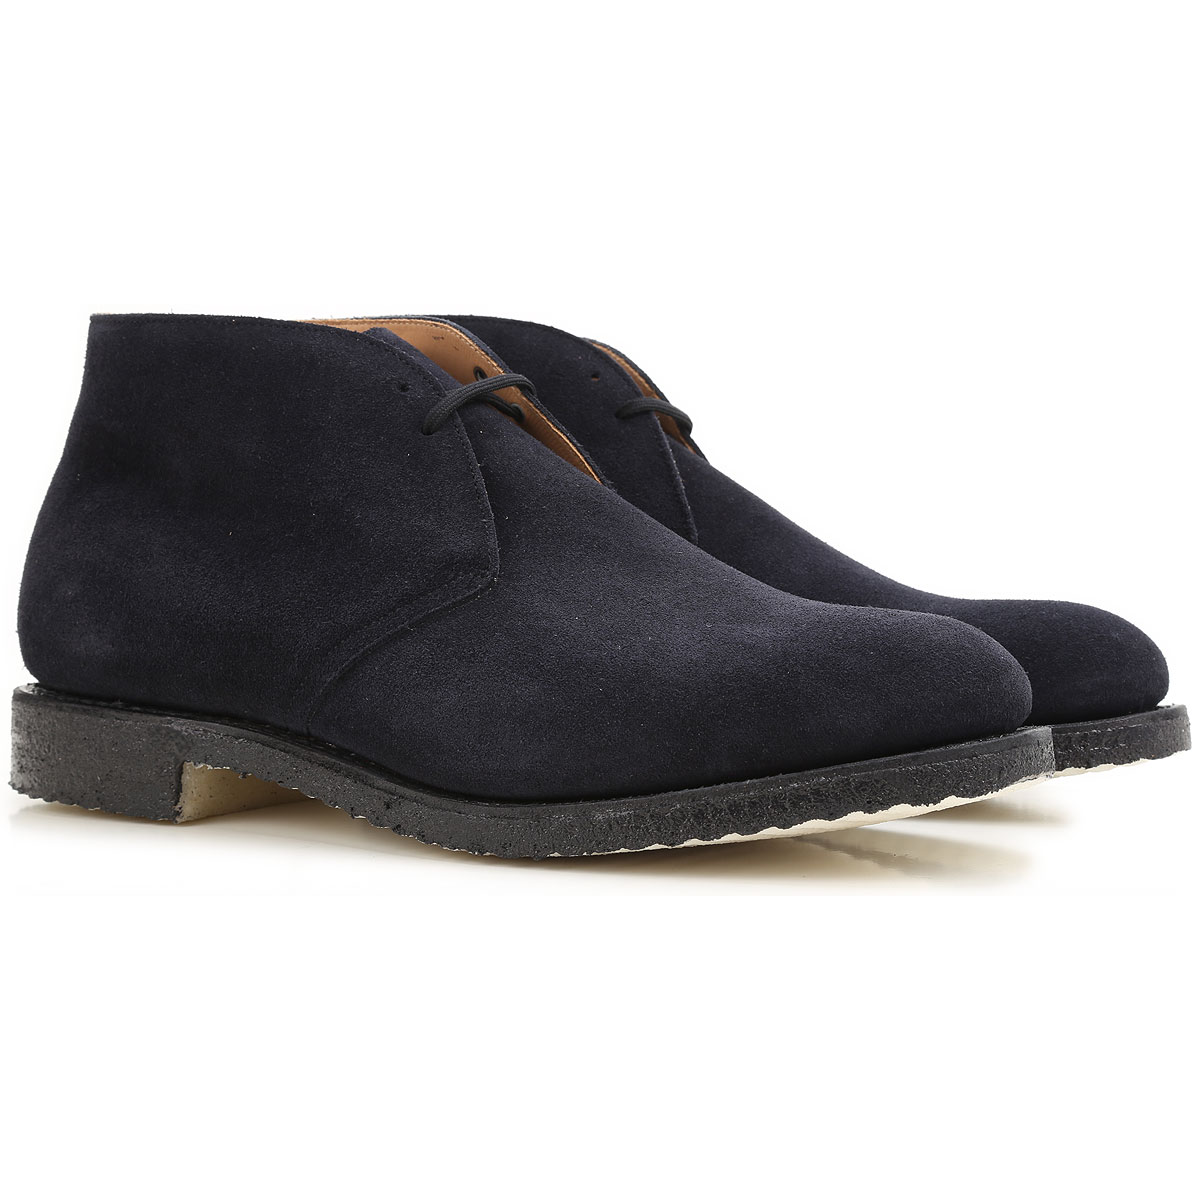 Image of Church's Desert Boots Chukka for Men, navy, Suede leather, 2017, 10 10.5 11 7 8 8.5 9.5